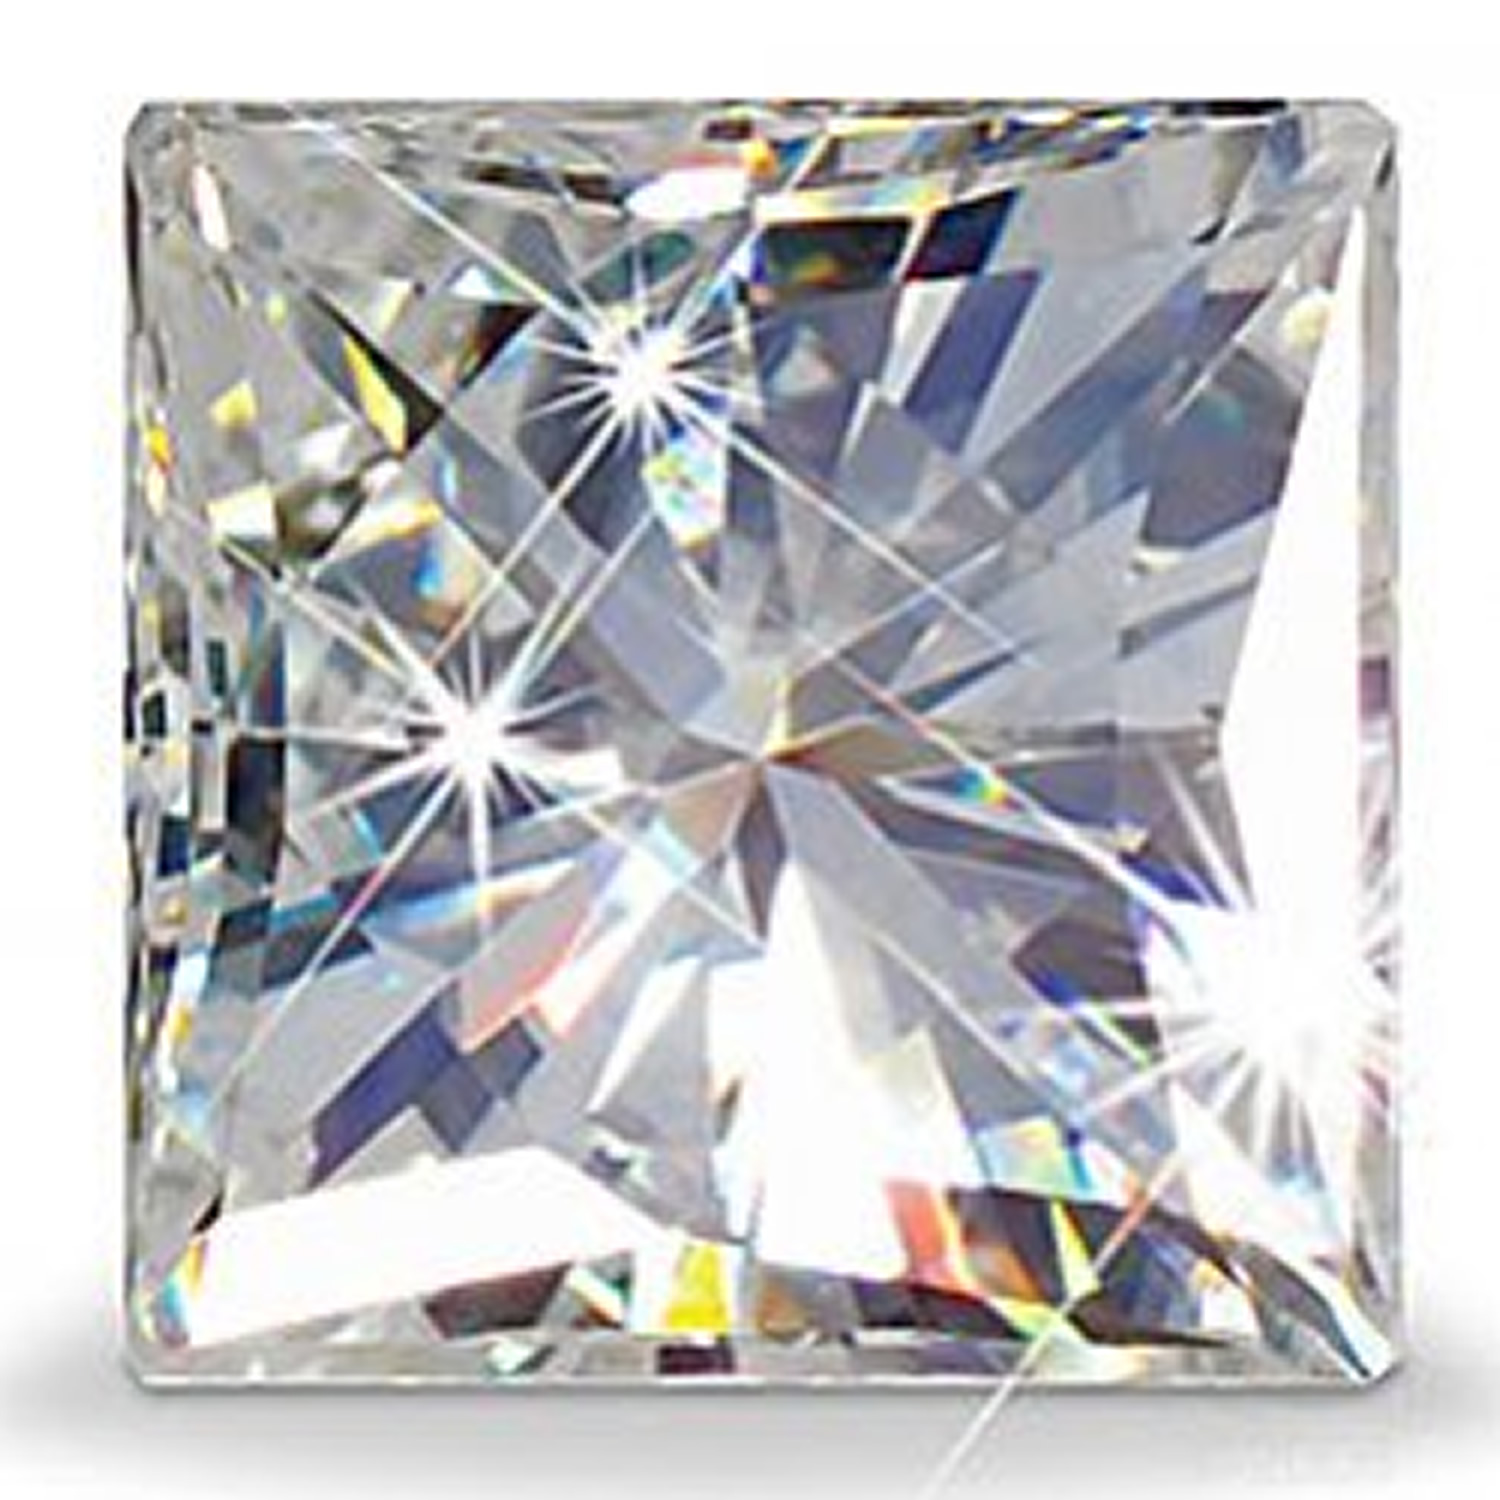 nature diamond gemstone in second moissanite the mineral hardest after